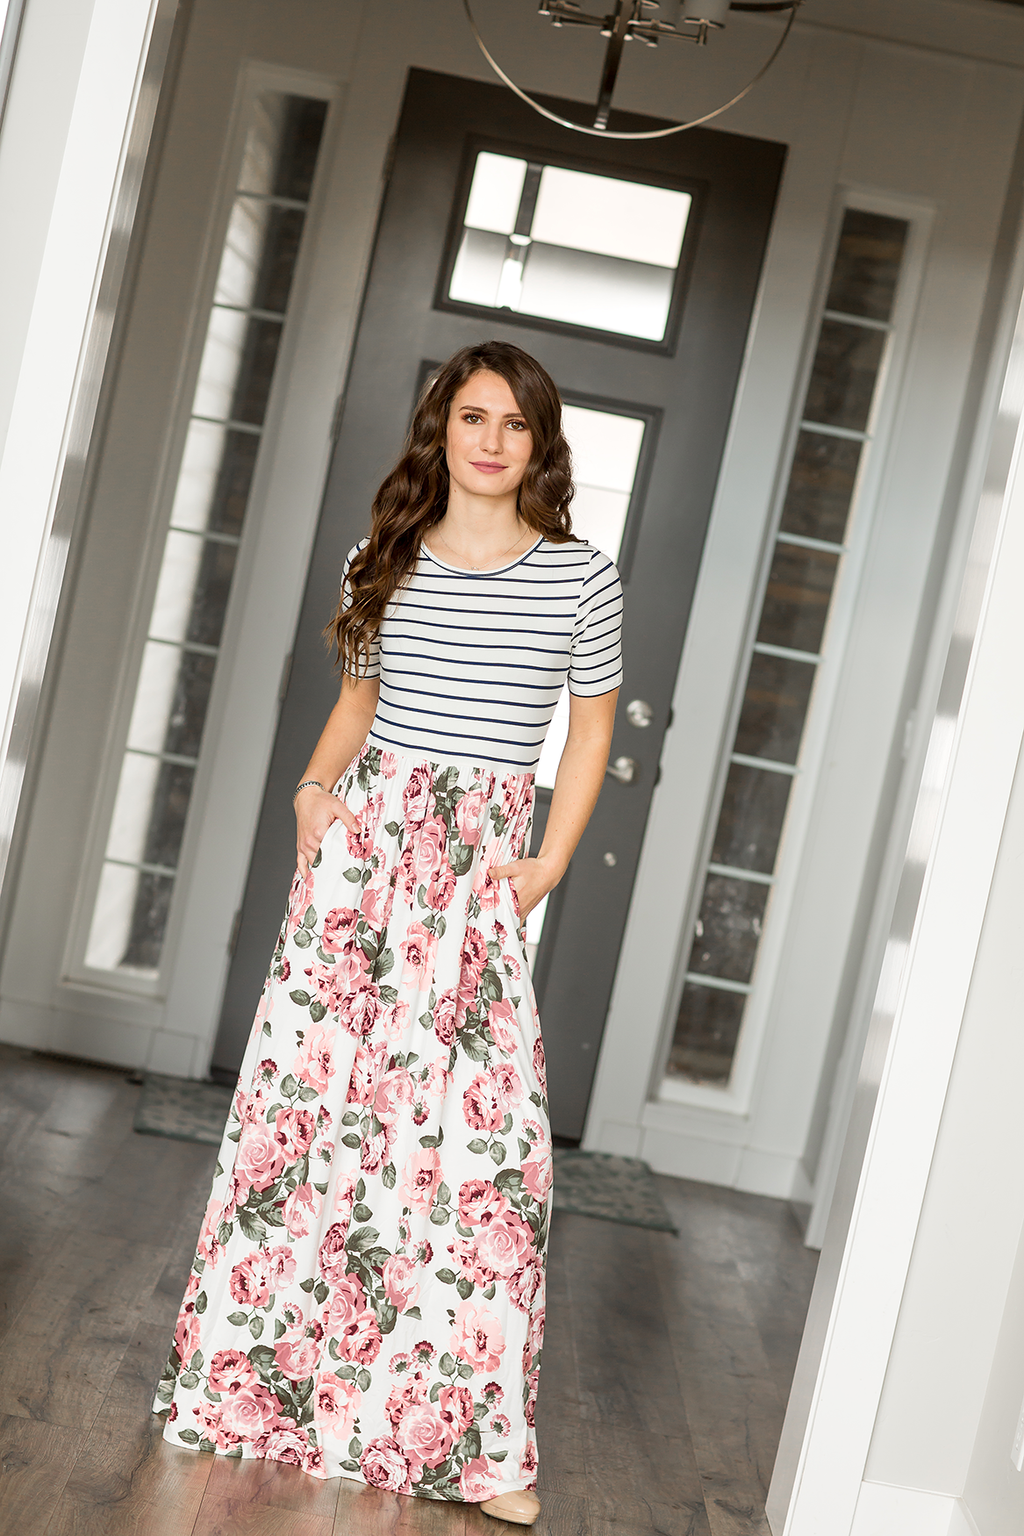 Feeling Fabulous Striped and Floral Maxi Dress